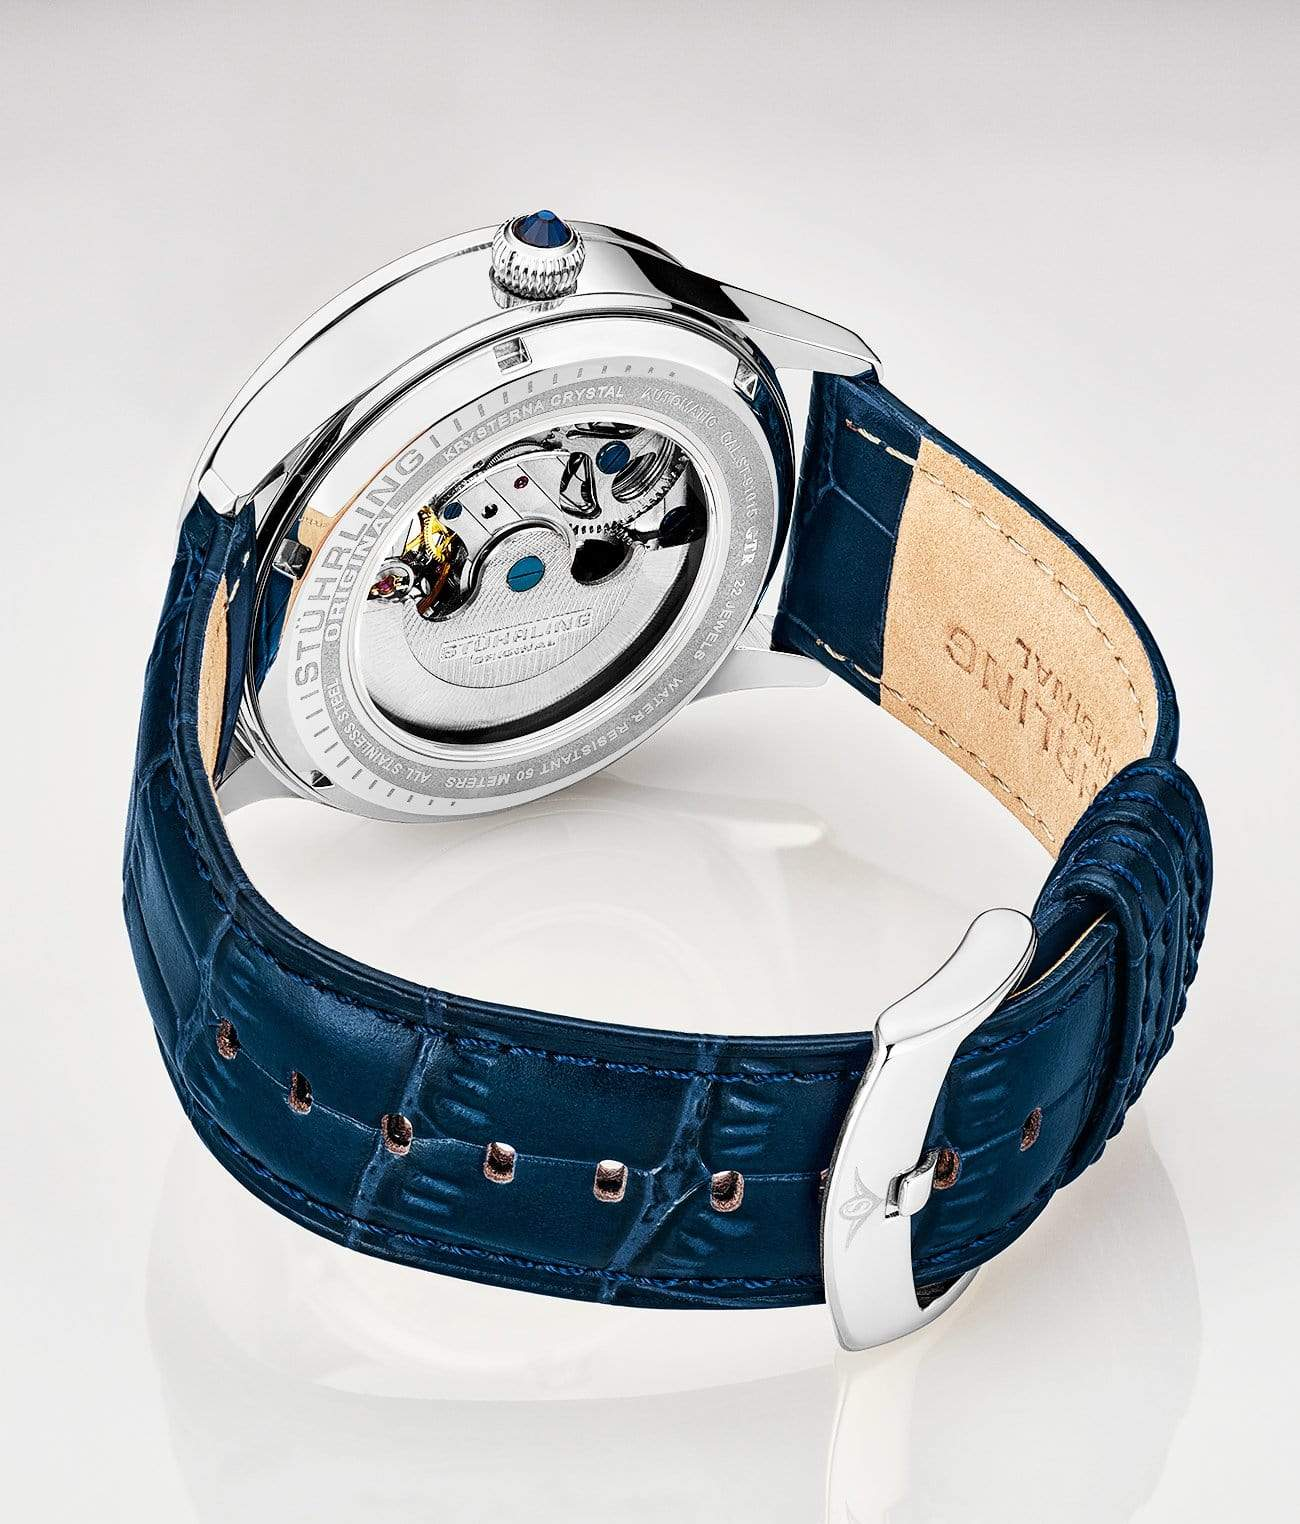 White Dial / Silver Case / Blue Band